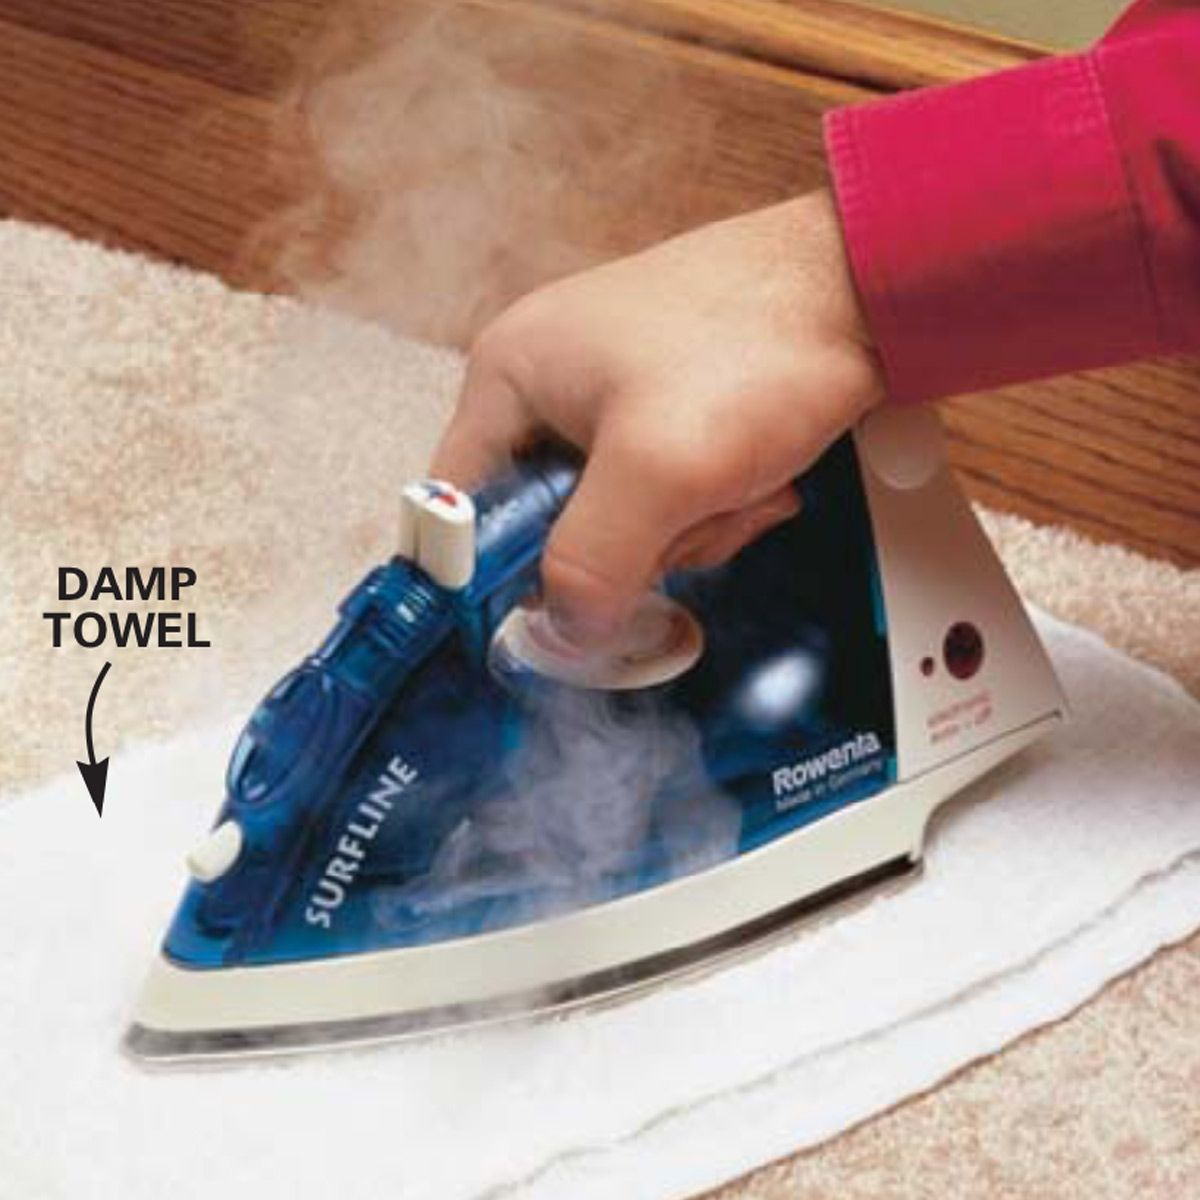 8a5f48d90f905c1fe6bb581668718551 - How To Get Candle Wax Out Of Carpet Without Iron